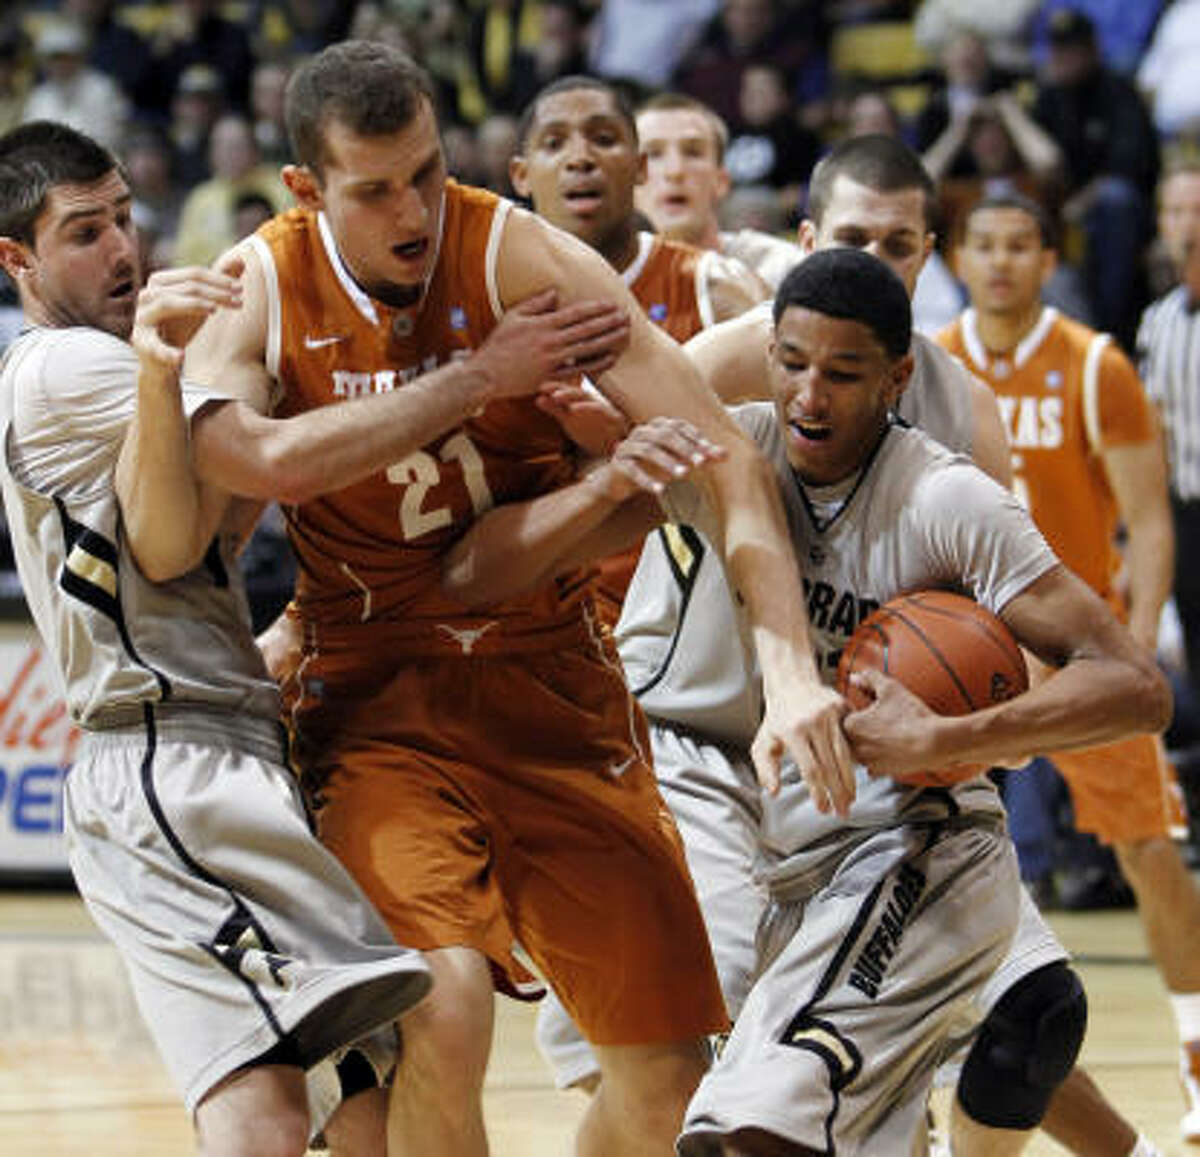 Feb. 26: Colorado 91, Texas 89 Colorado's Alec Burks, right, took control of the ball and the game against Texas on Saturday. Burks scored a game-high 33 points to help the Buffaloes rally from a 22-point deficit and upset the No. 5 Longhorns.